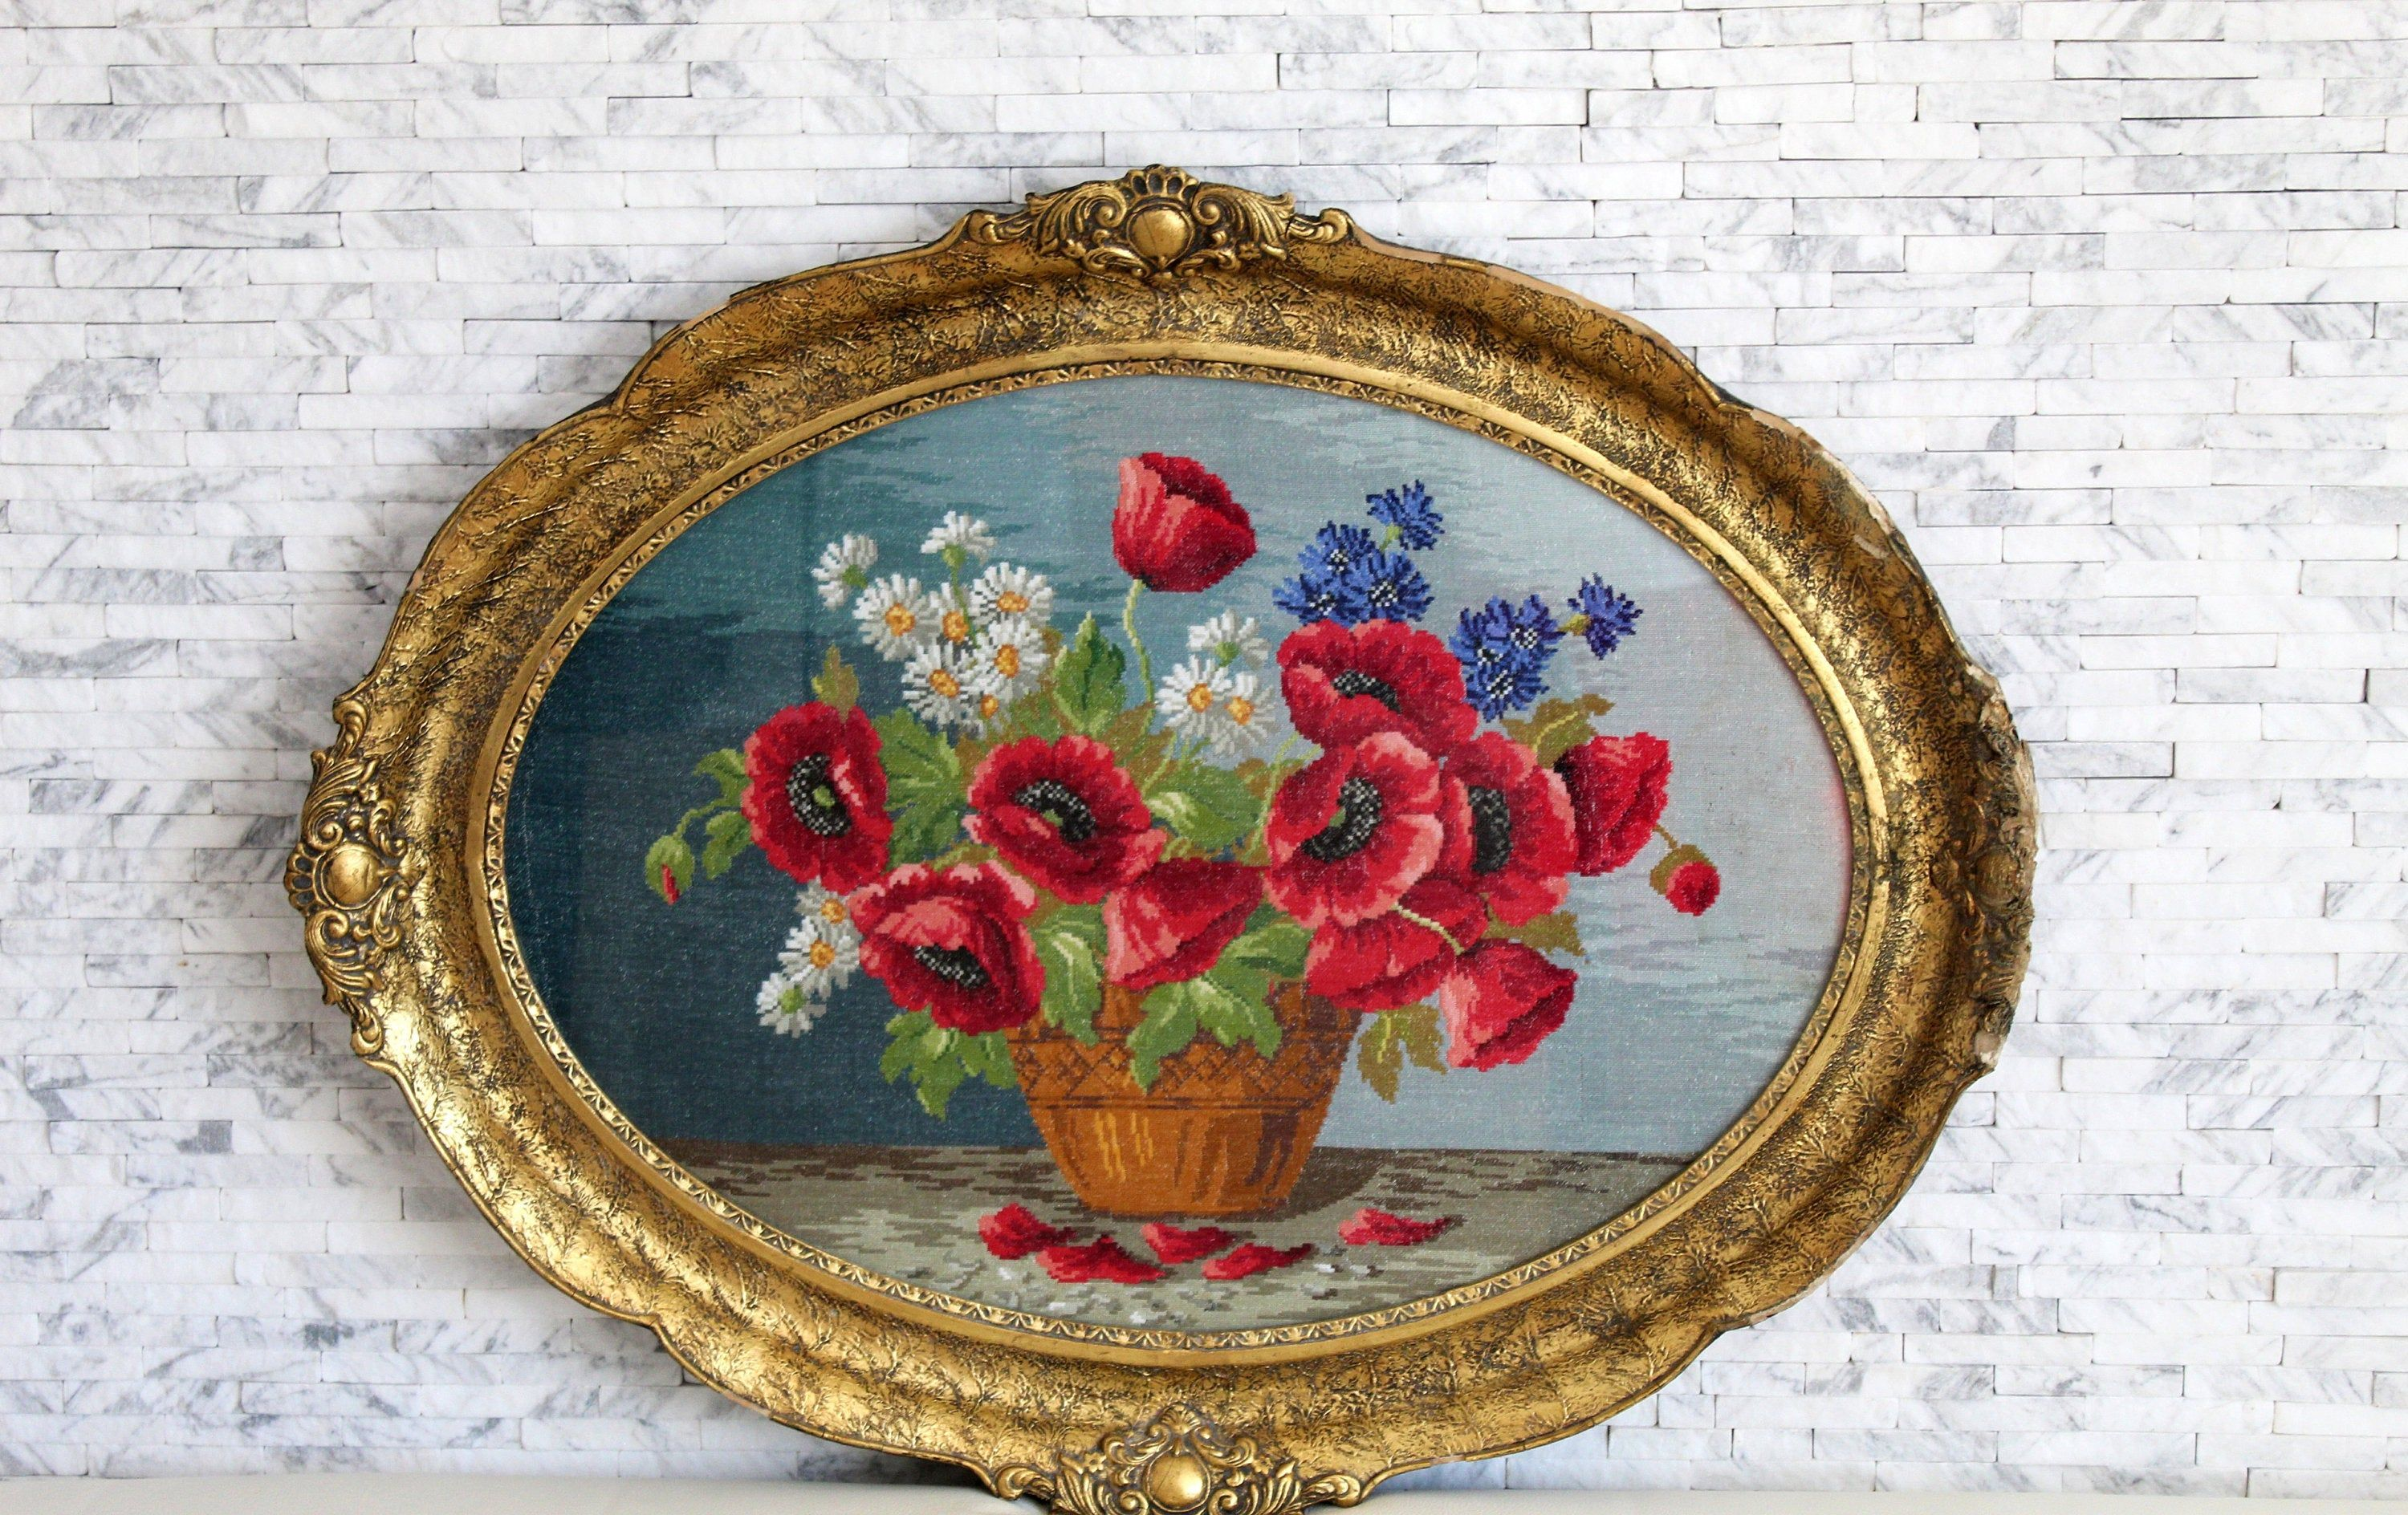 Handmade petit point tapestry 9x 13 Baroque wall art Finished needlepoint Completed cross stitch Vintage tapestry,Gobelin needlepoint